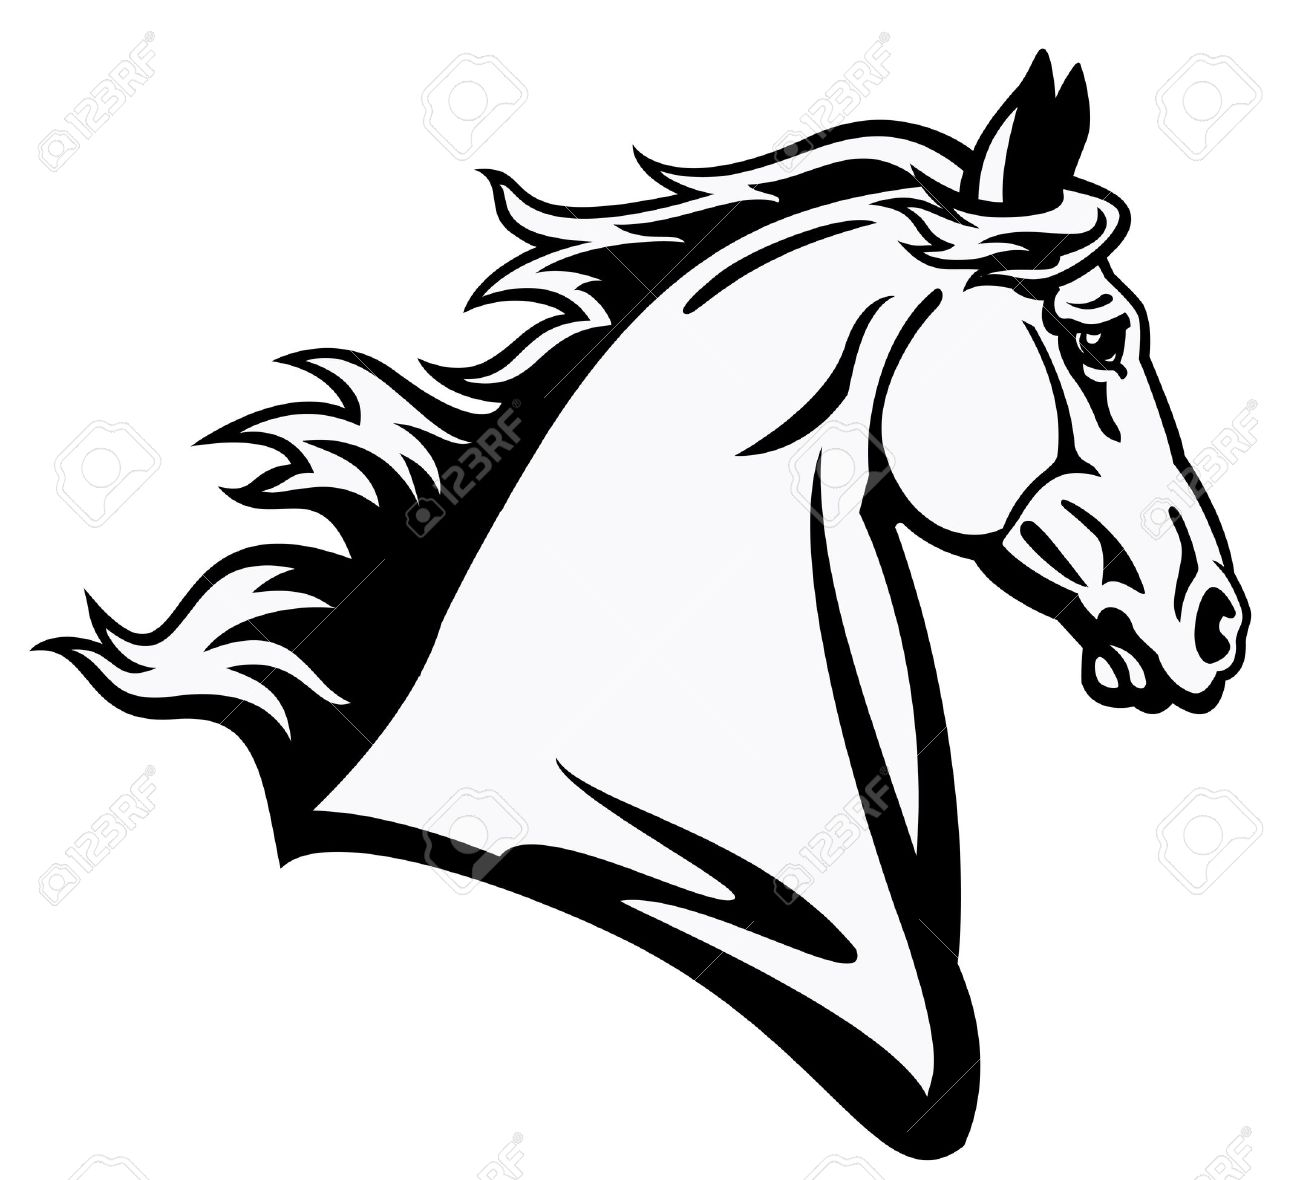 Horse Head Black And White Picture Side View Image Isolated On Royalty Free Cliparts Vectors And Stock Illustration Image 15783693